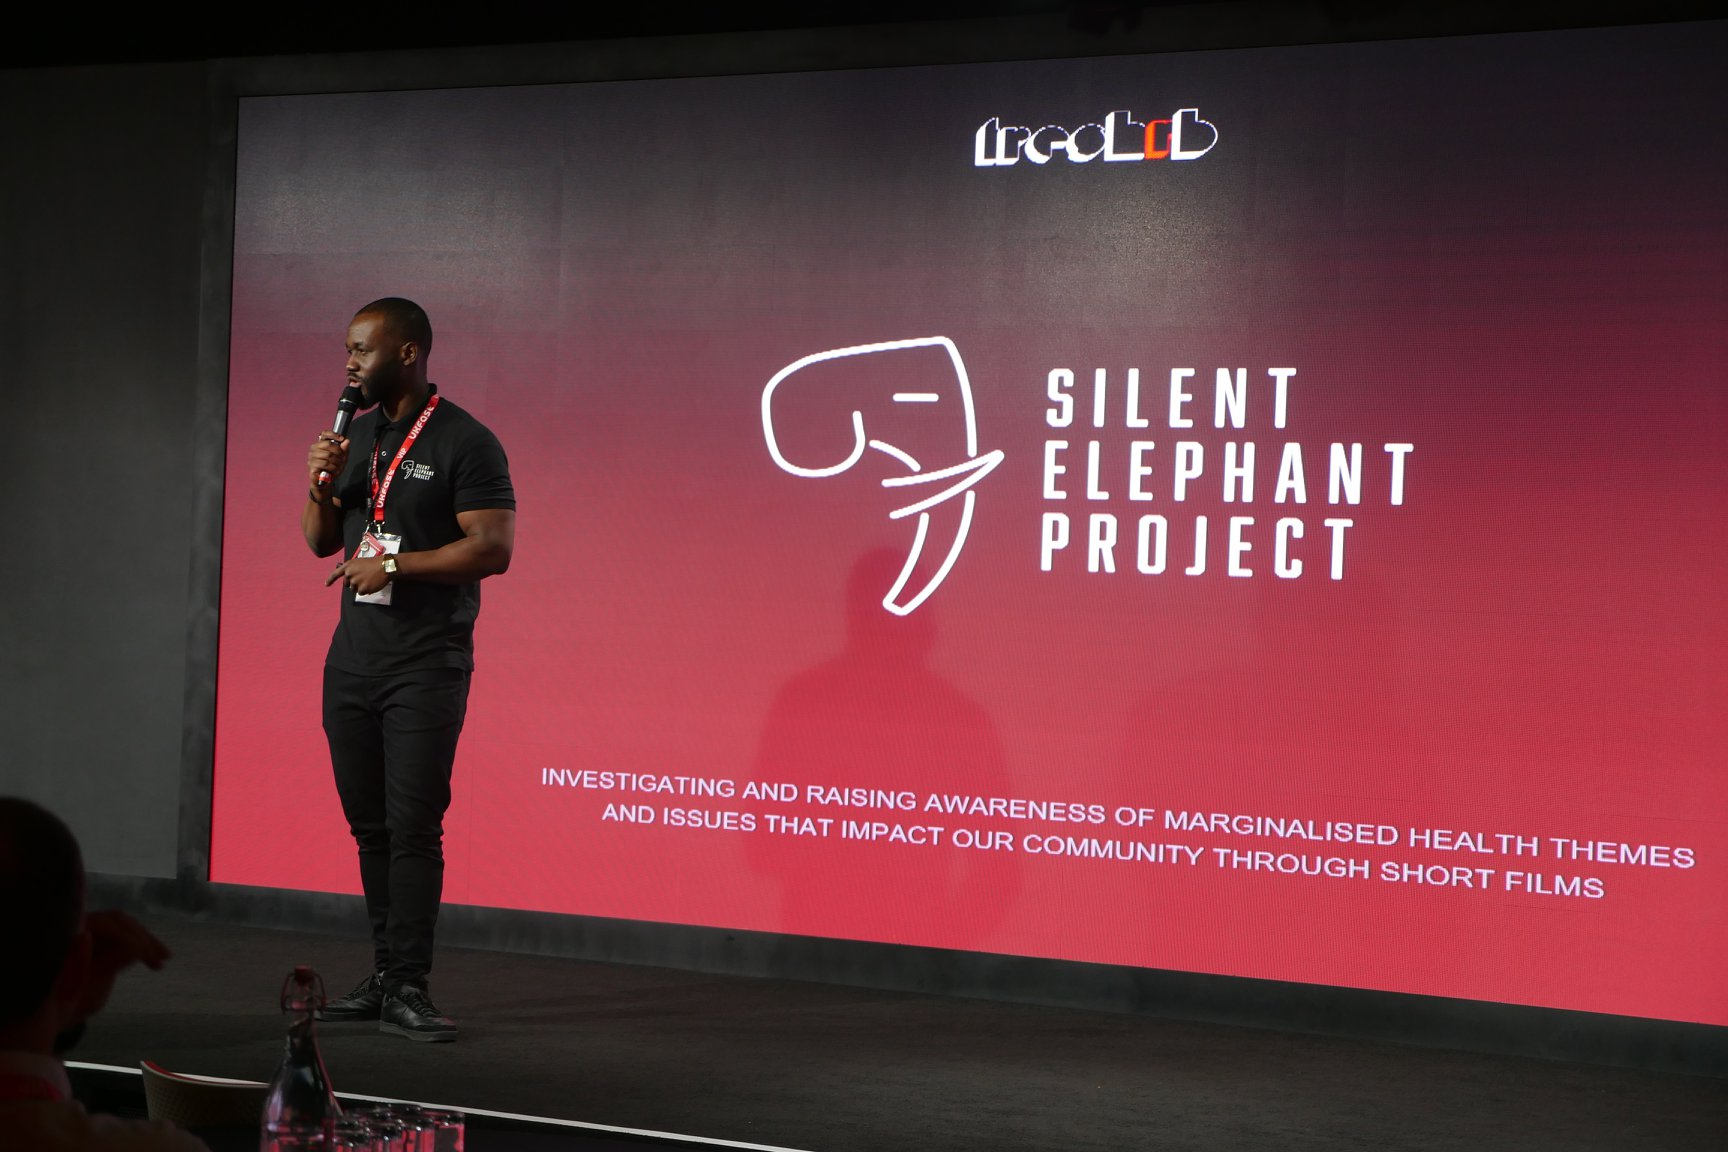 Silent Elephant Project (SEP) short film - In Their Eyes